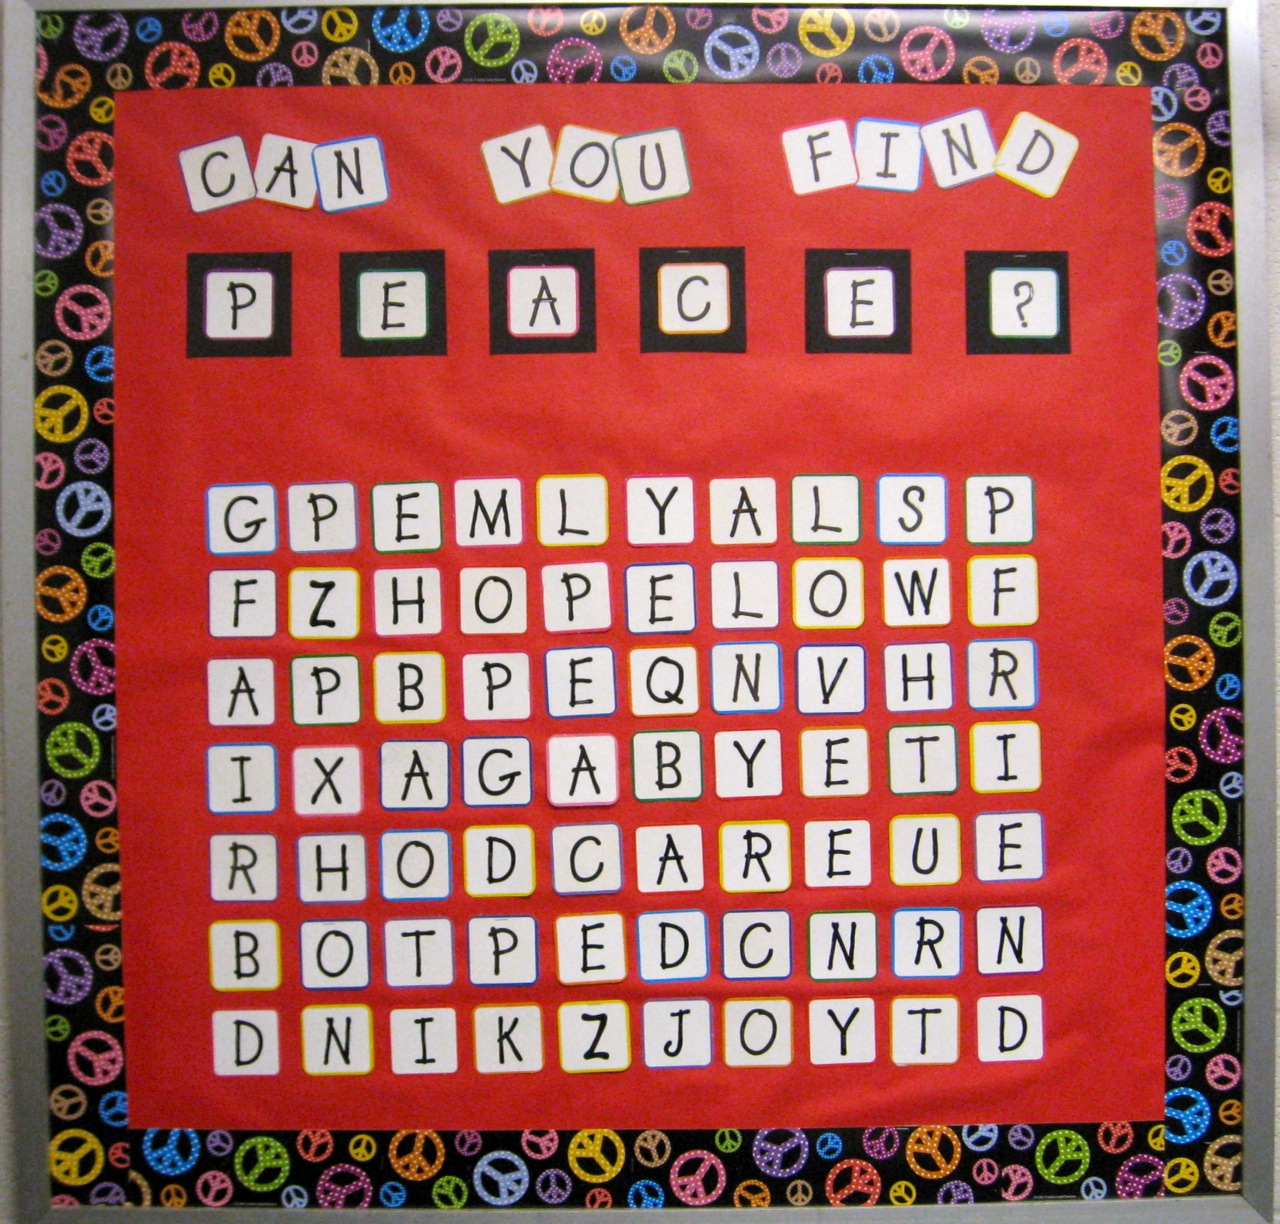 bulletin board template word - the corner on character room to breathe